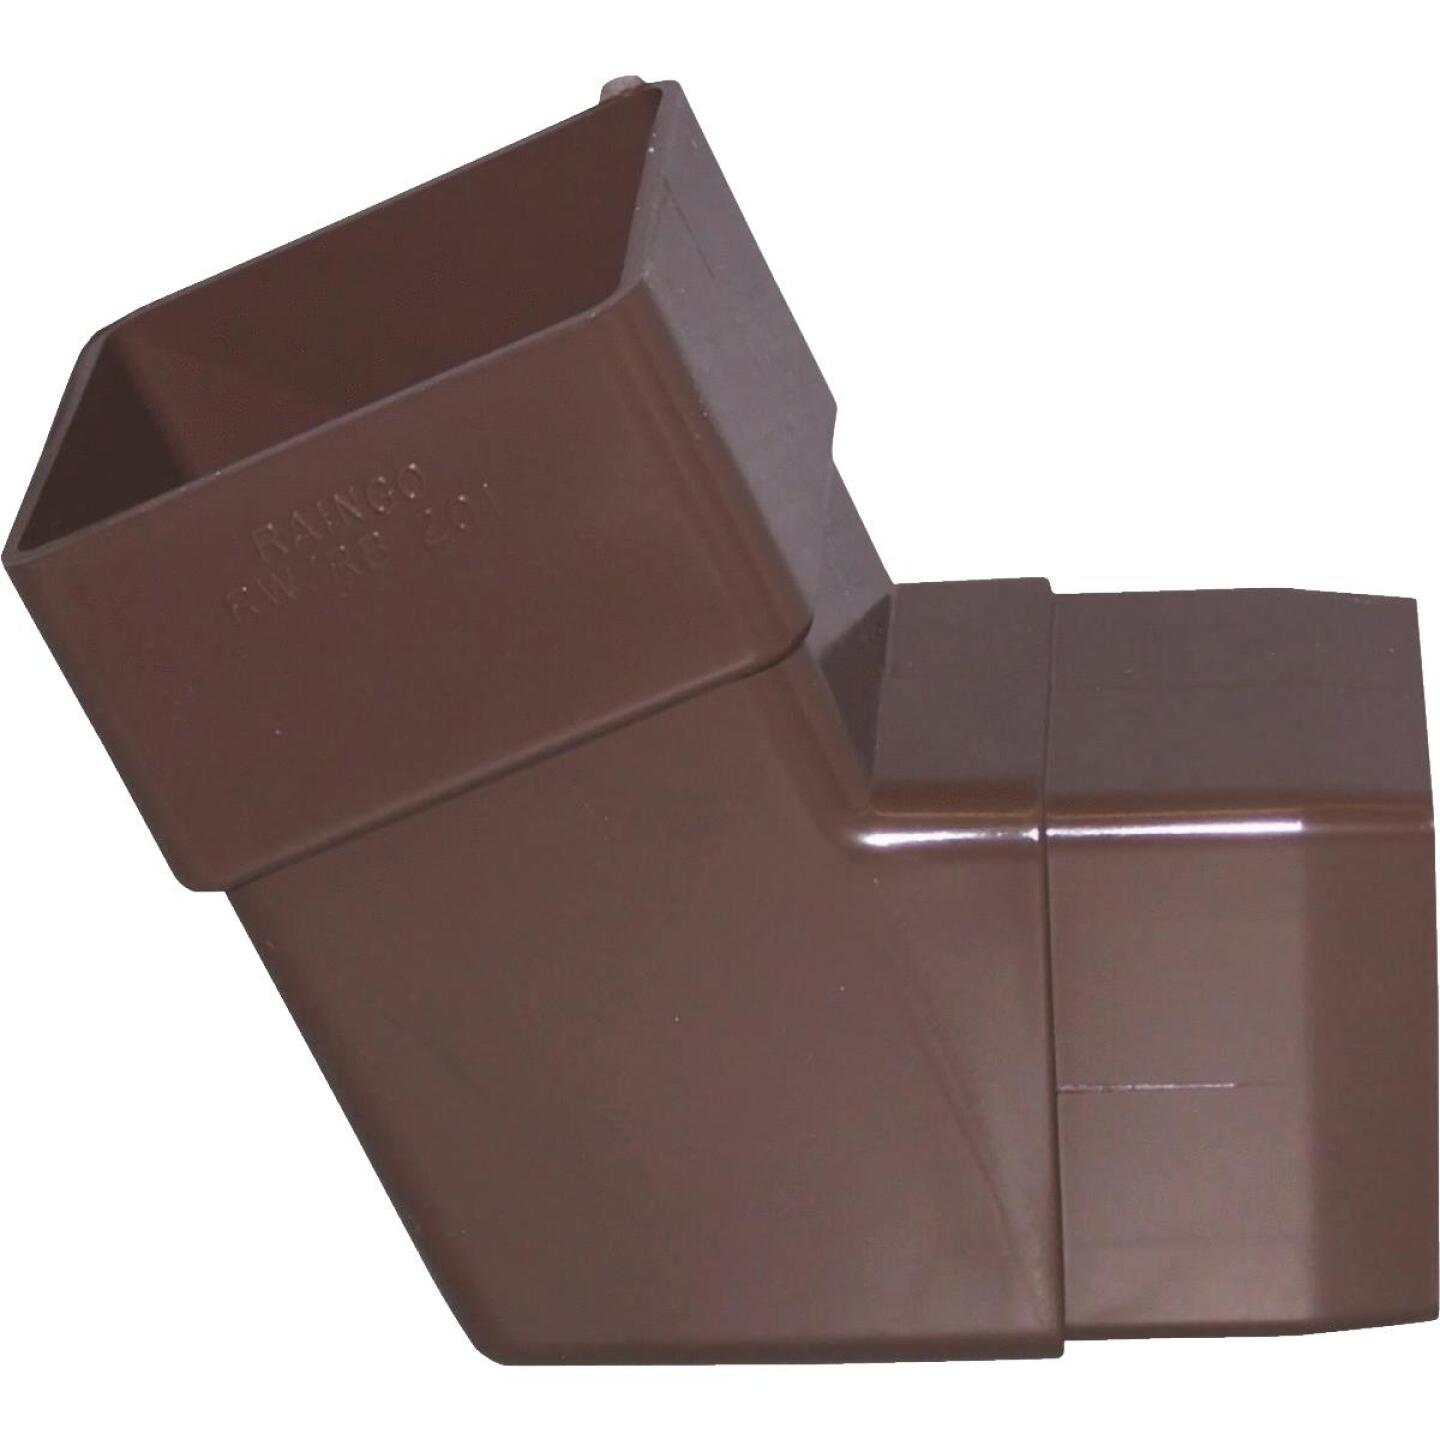 Raingo 2-1/2 In. Vinyl Brown Front or Side Downspout Elbow Image 1